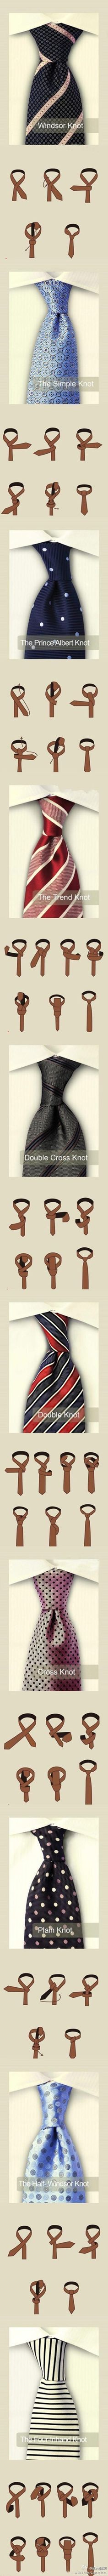 How to tie a tie!!!! Every woman needs to know this.. You'll need it, believe me! And for the men .. Here's the scoop!